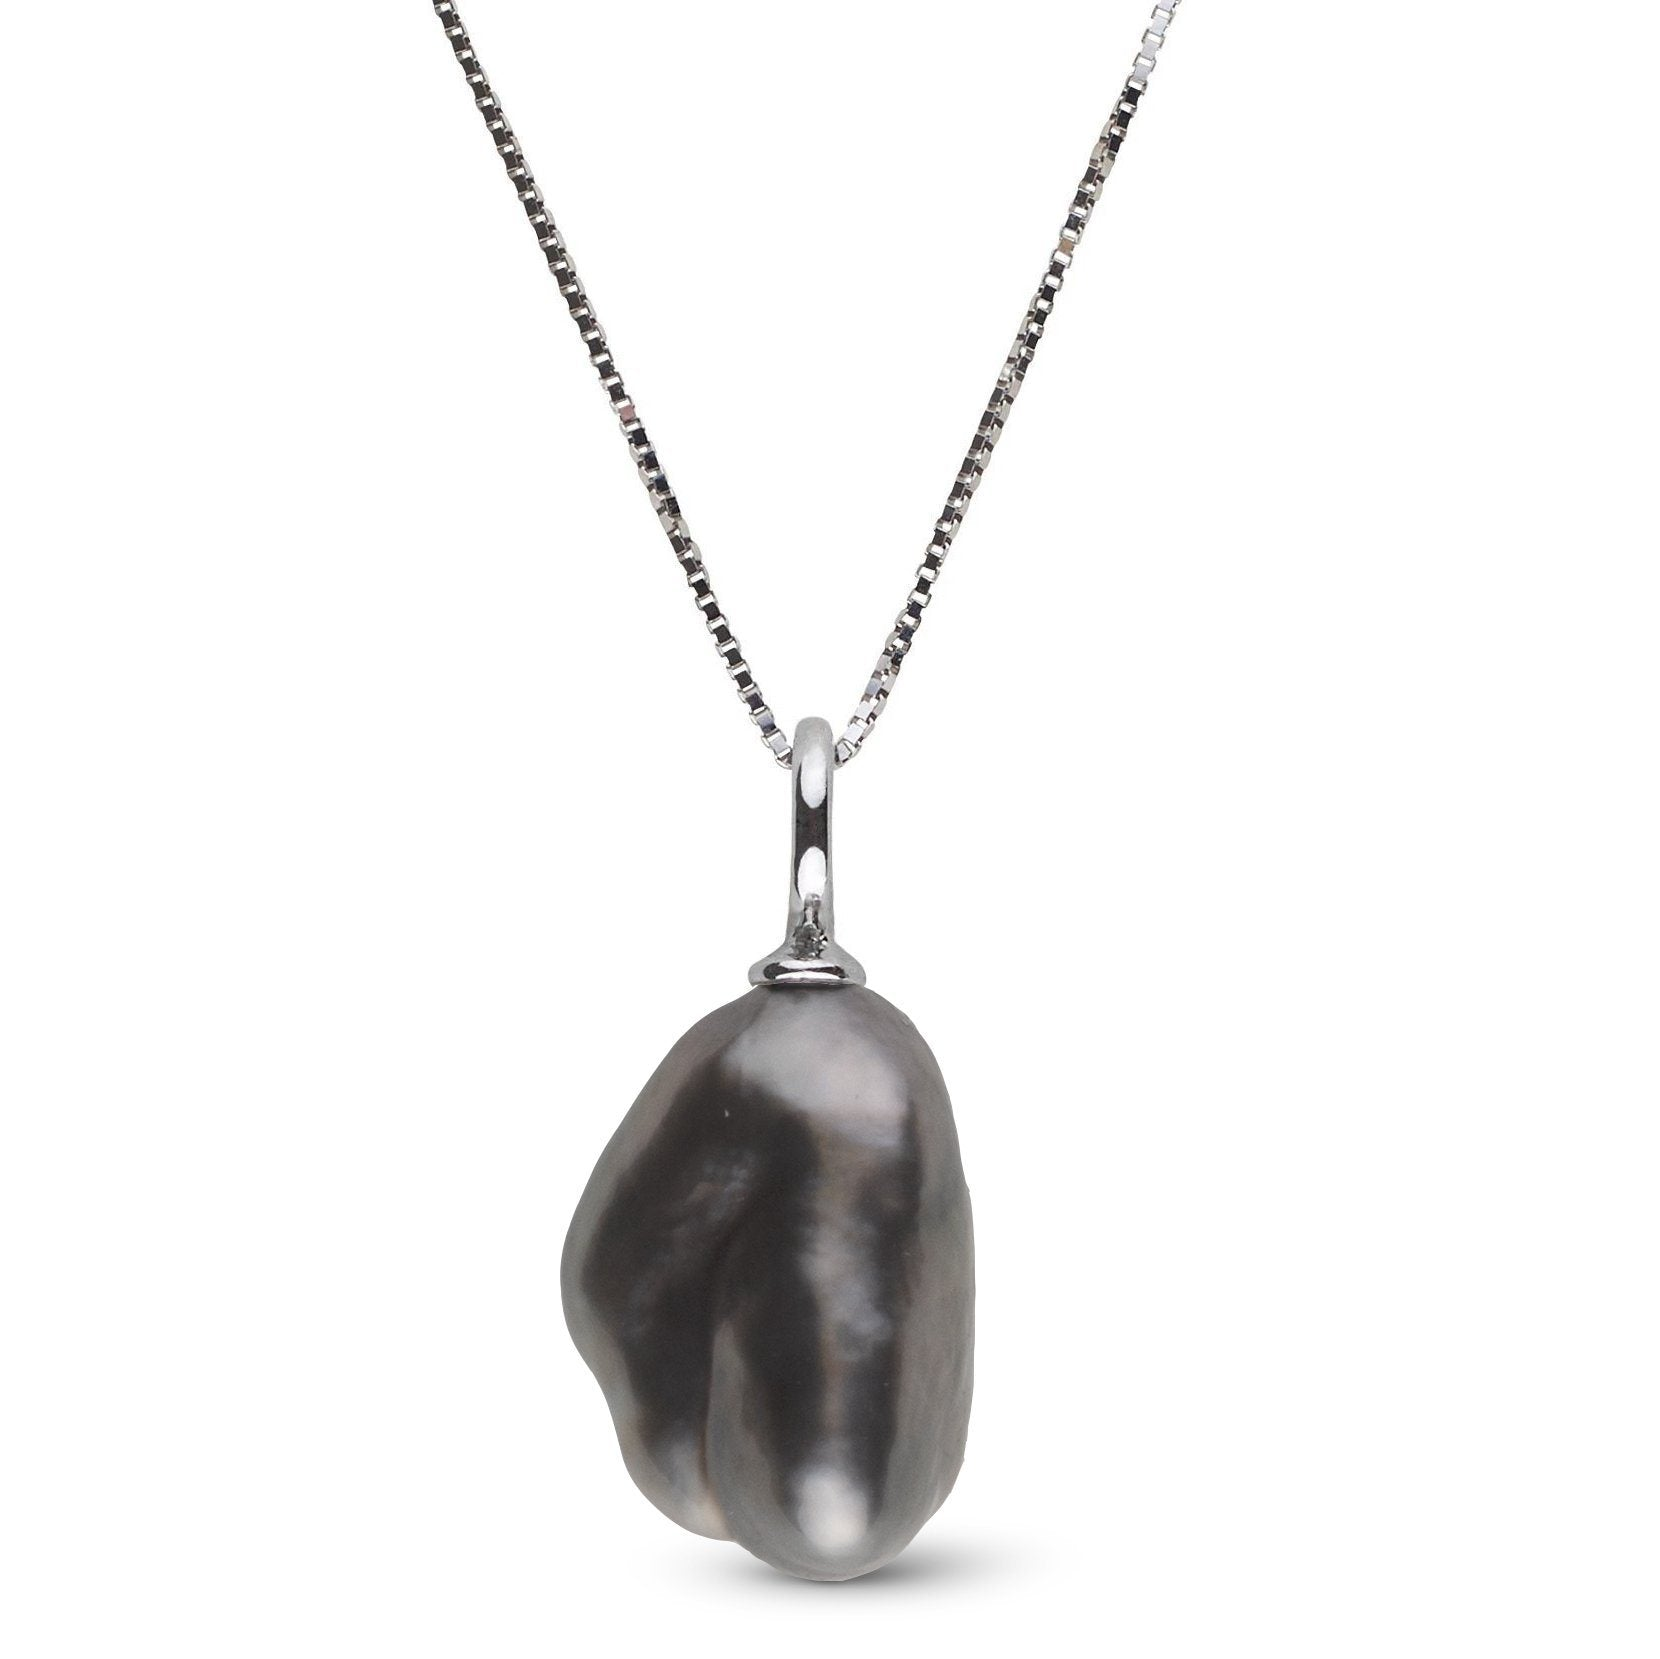 Muse Collection Unique Keshi Tahitian Pearl Pendant